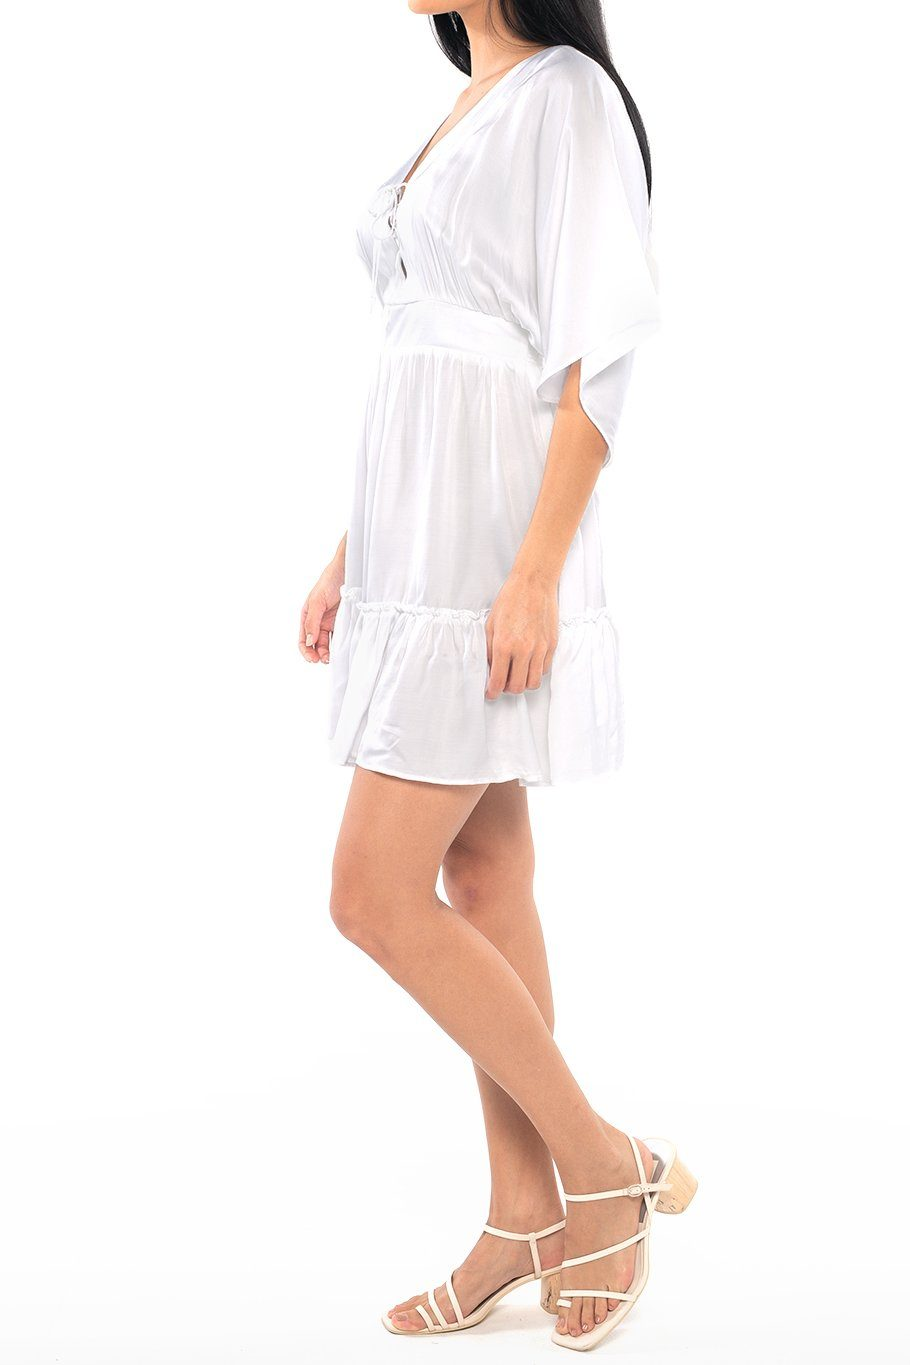 Lisbon Layered Mini Dress - Satin White - Shore